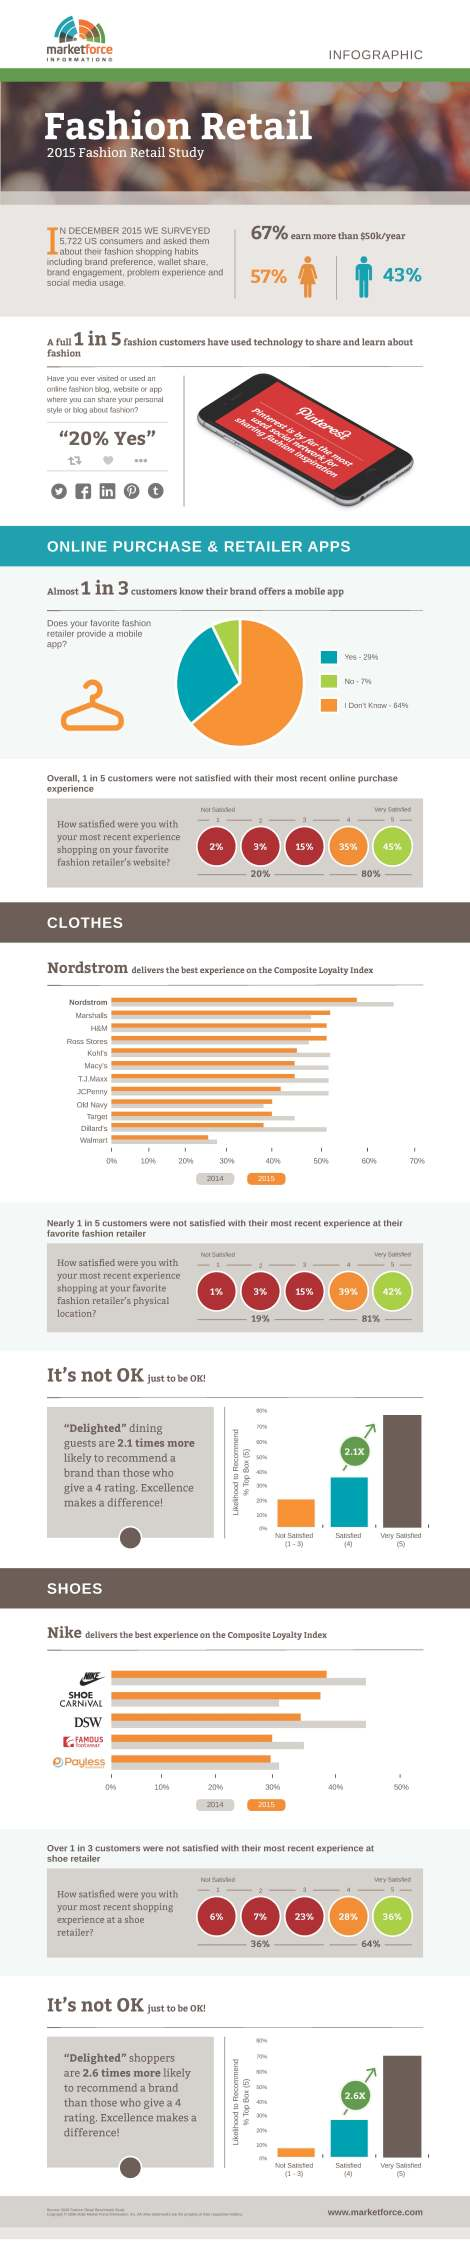 Fashion Retail - Infographic - us